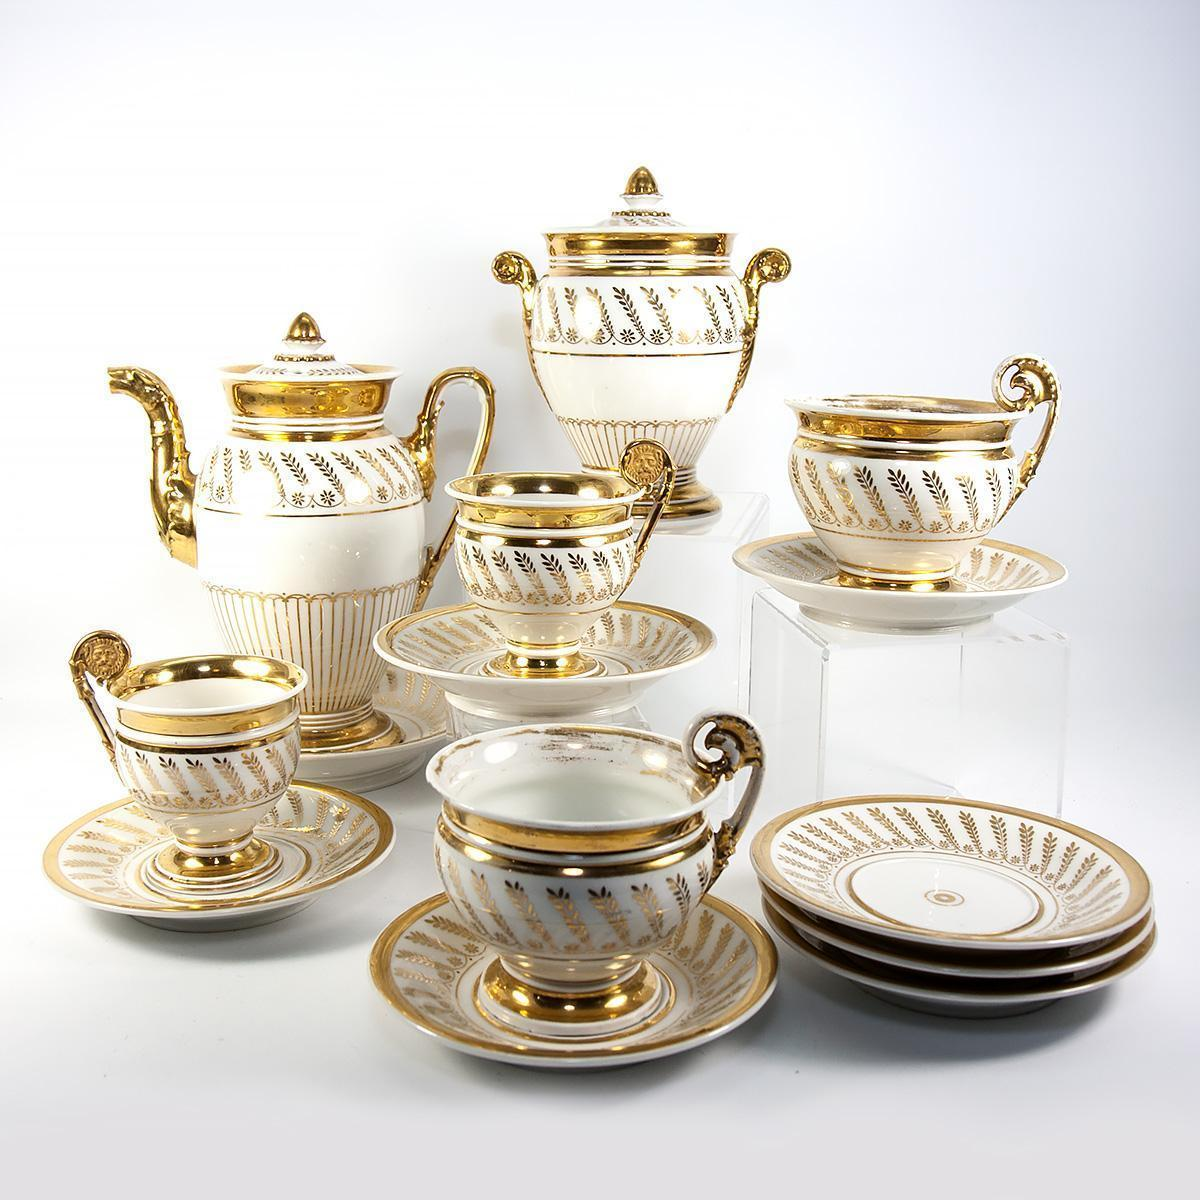 Fab Antique French Old Paris Porcelain French Empire Era Tea & Chocolate Set, 14 pc. +